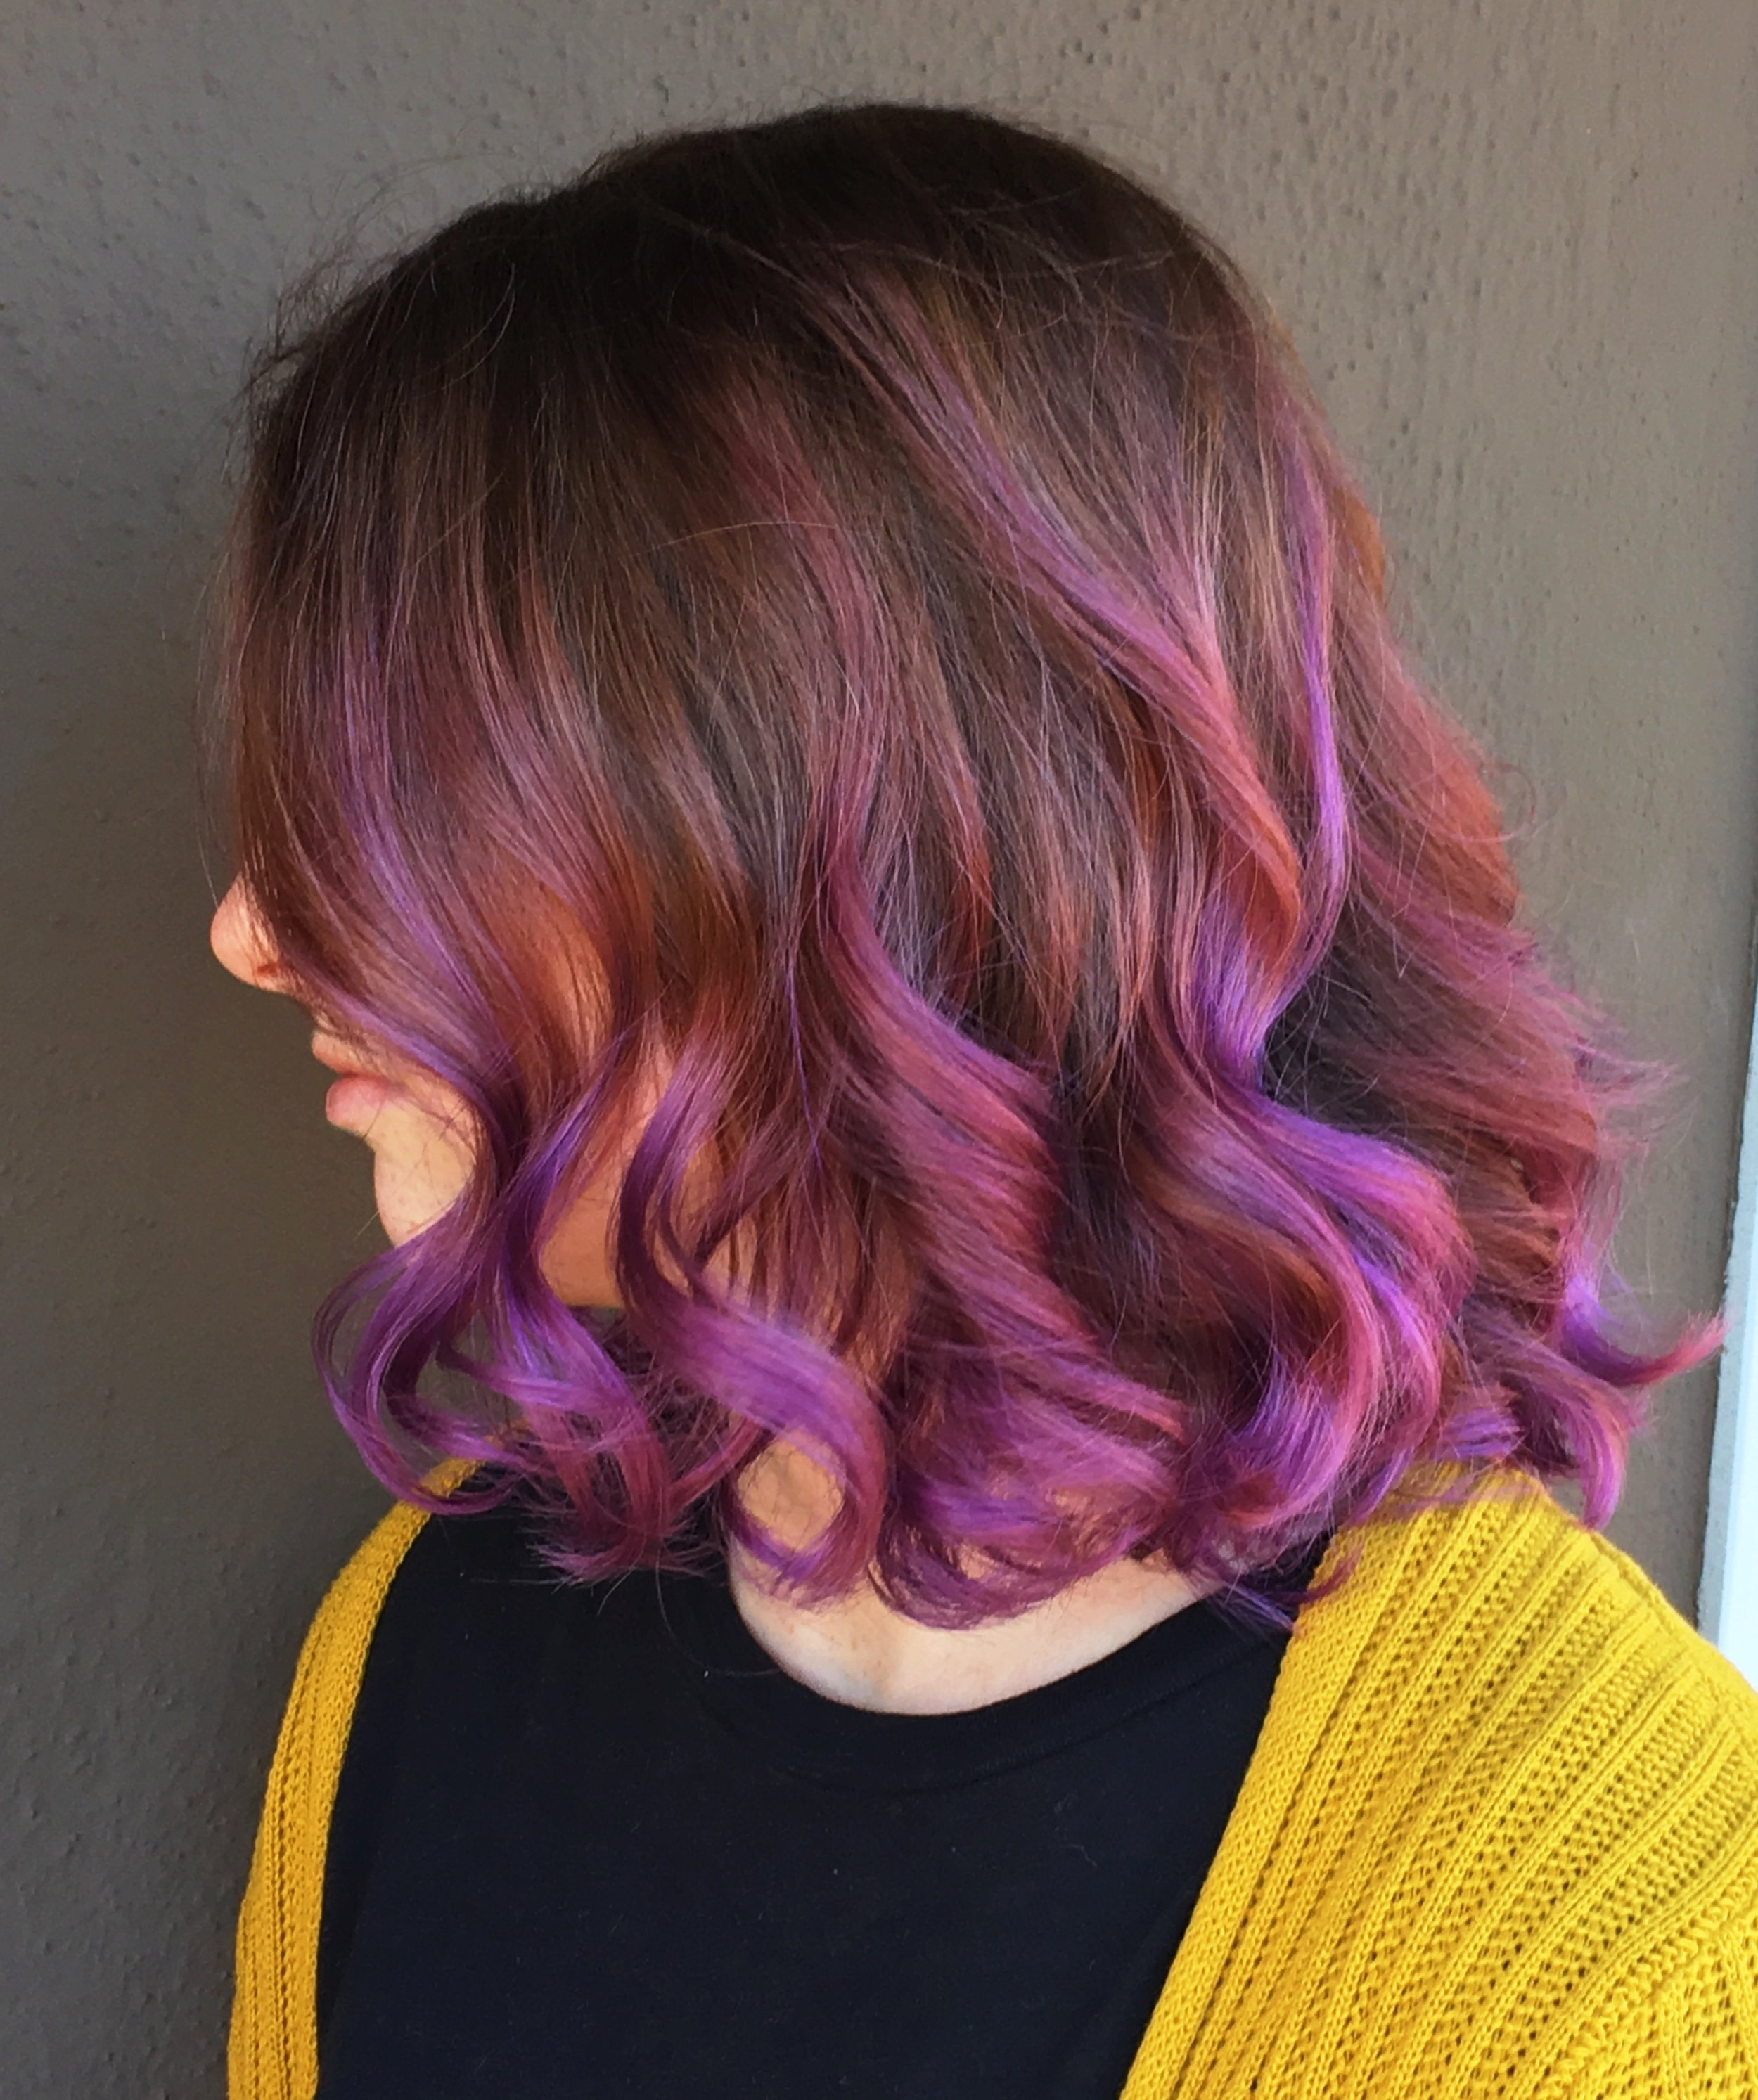 I had purple hair for half of 2018! It was awesome, but very high maintenance.